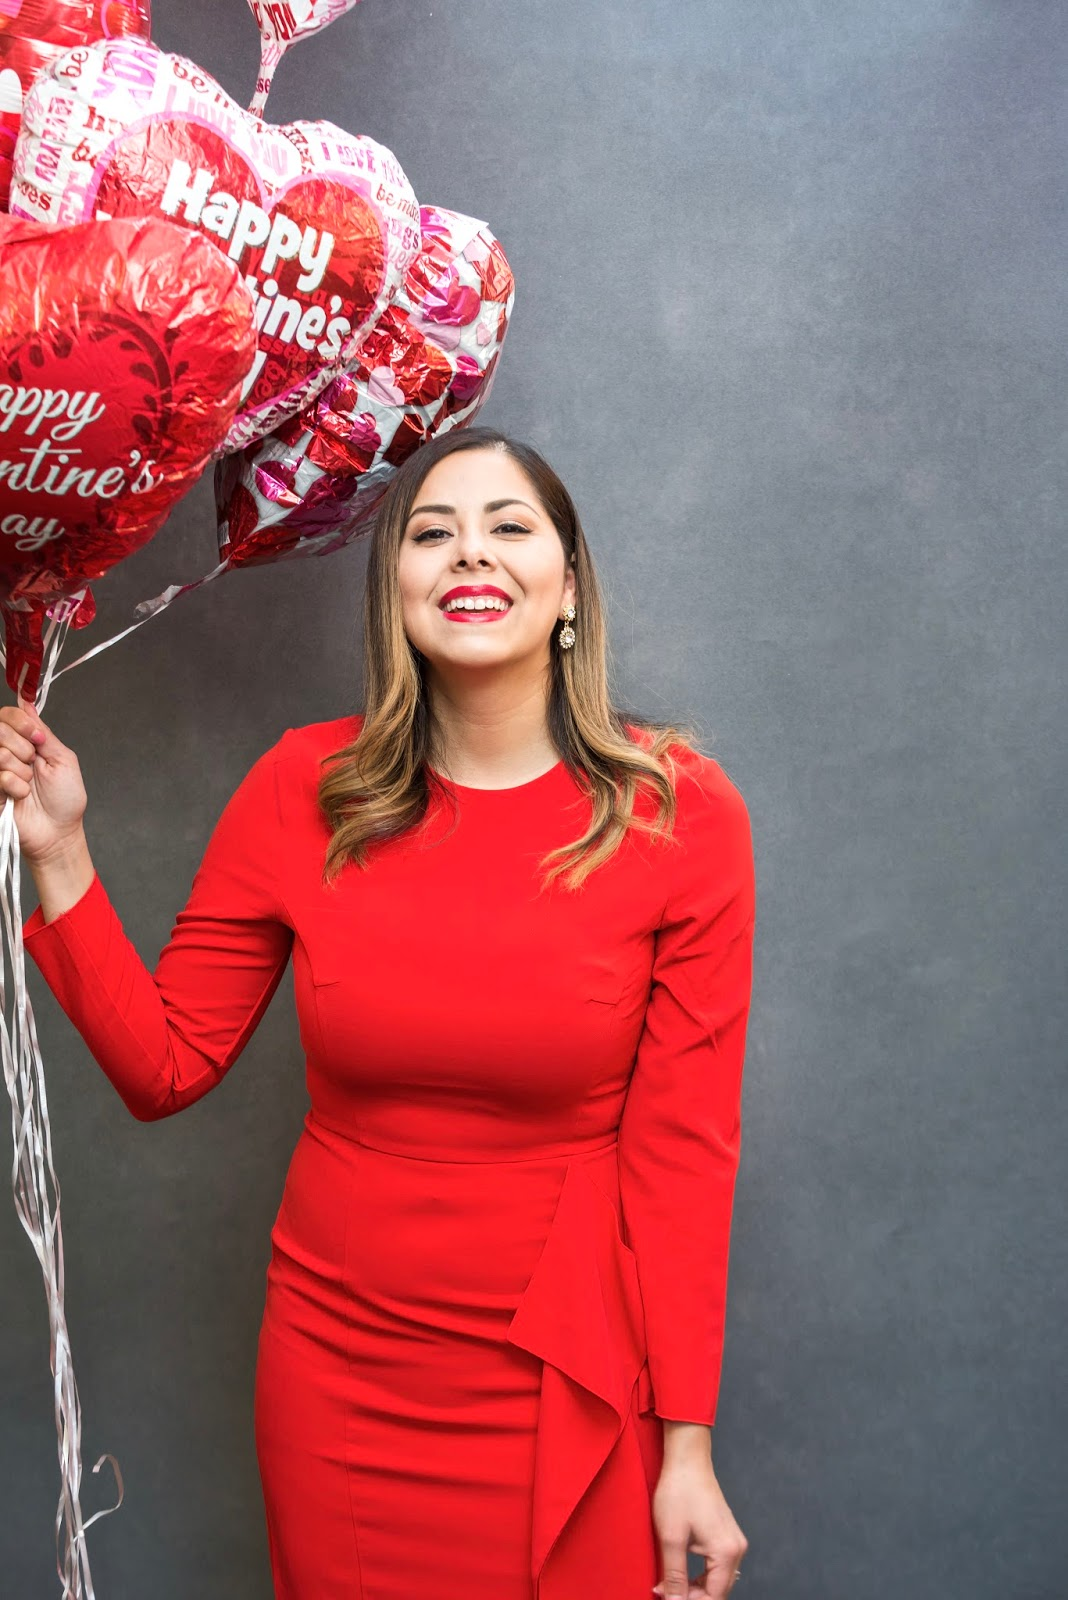 The perfect Valentine's Day outfit, red dress for curvy blogger, liptensity mac mulling spices